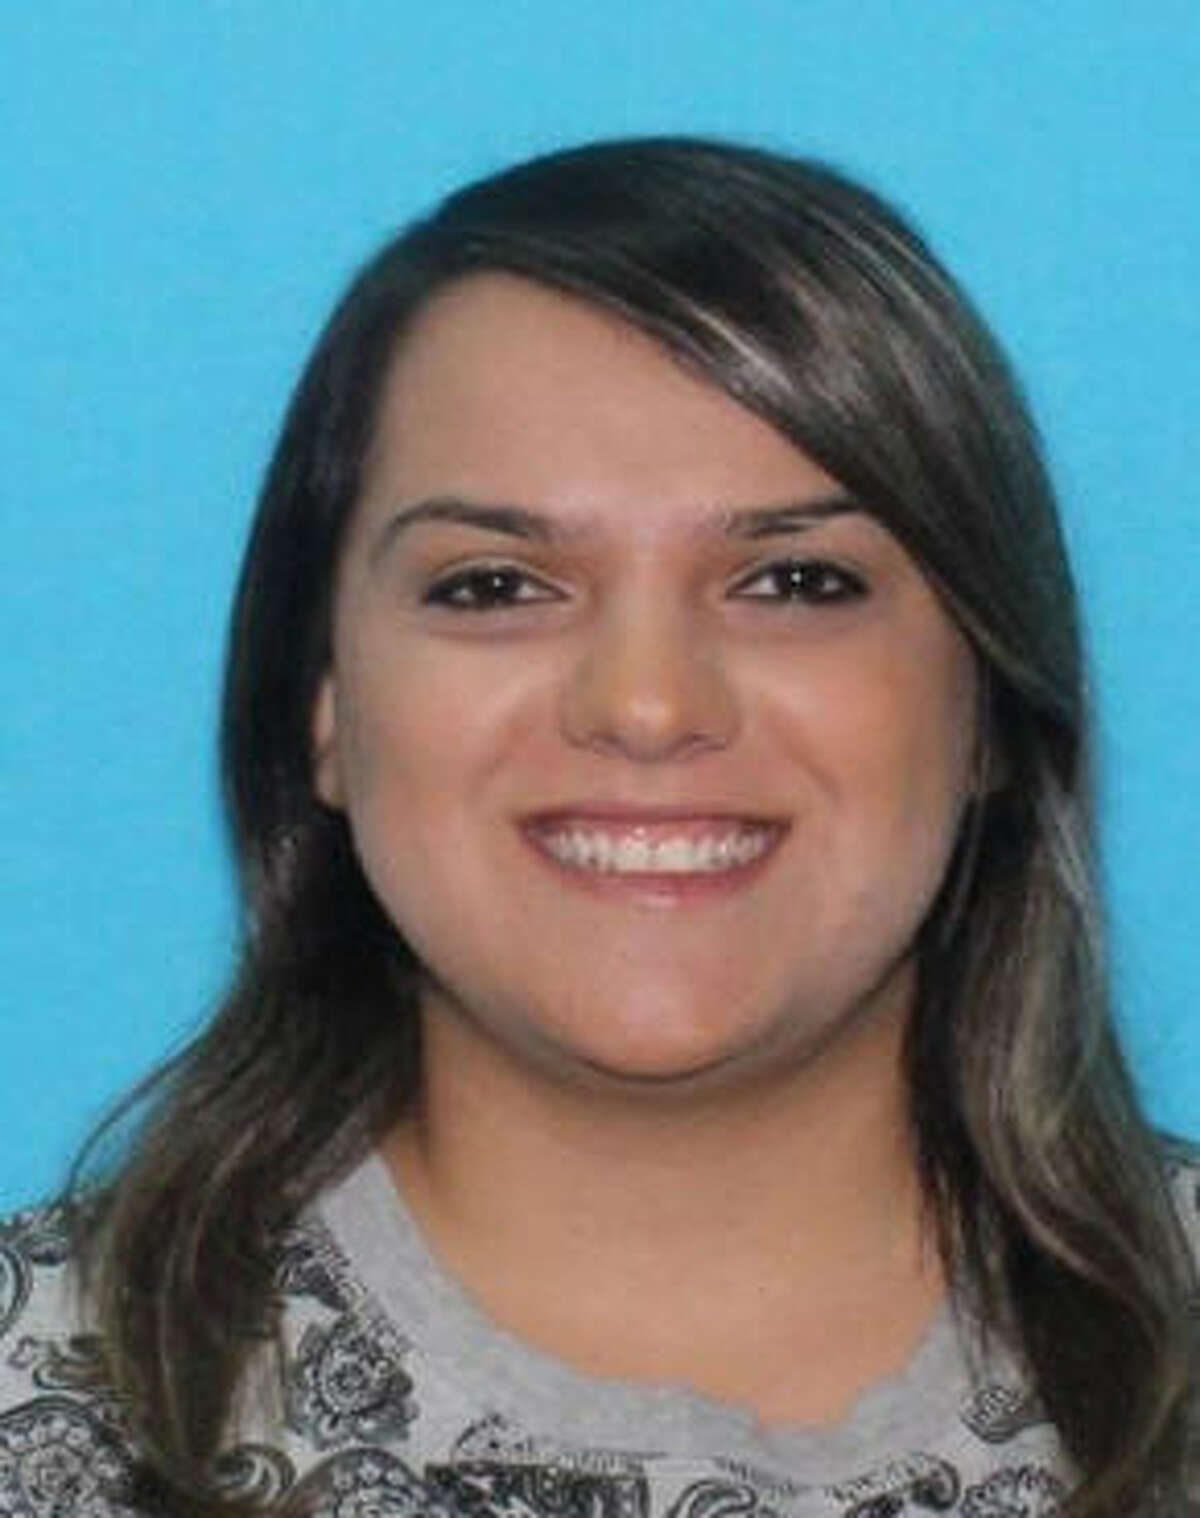 Name: Iris Iliana Rodriguez Wanted For: Indecency with a Child by Sexual Contact, Indecency with a Child, Unlawful Restraint, Harassment Reward: Up to $5,000